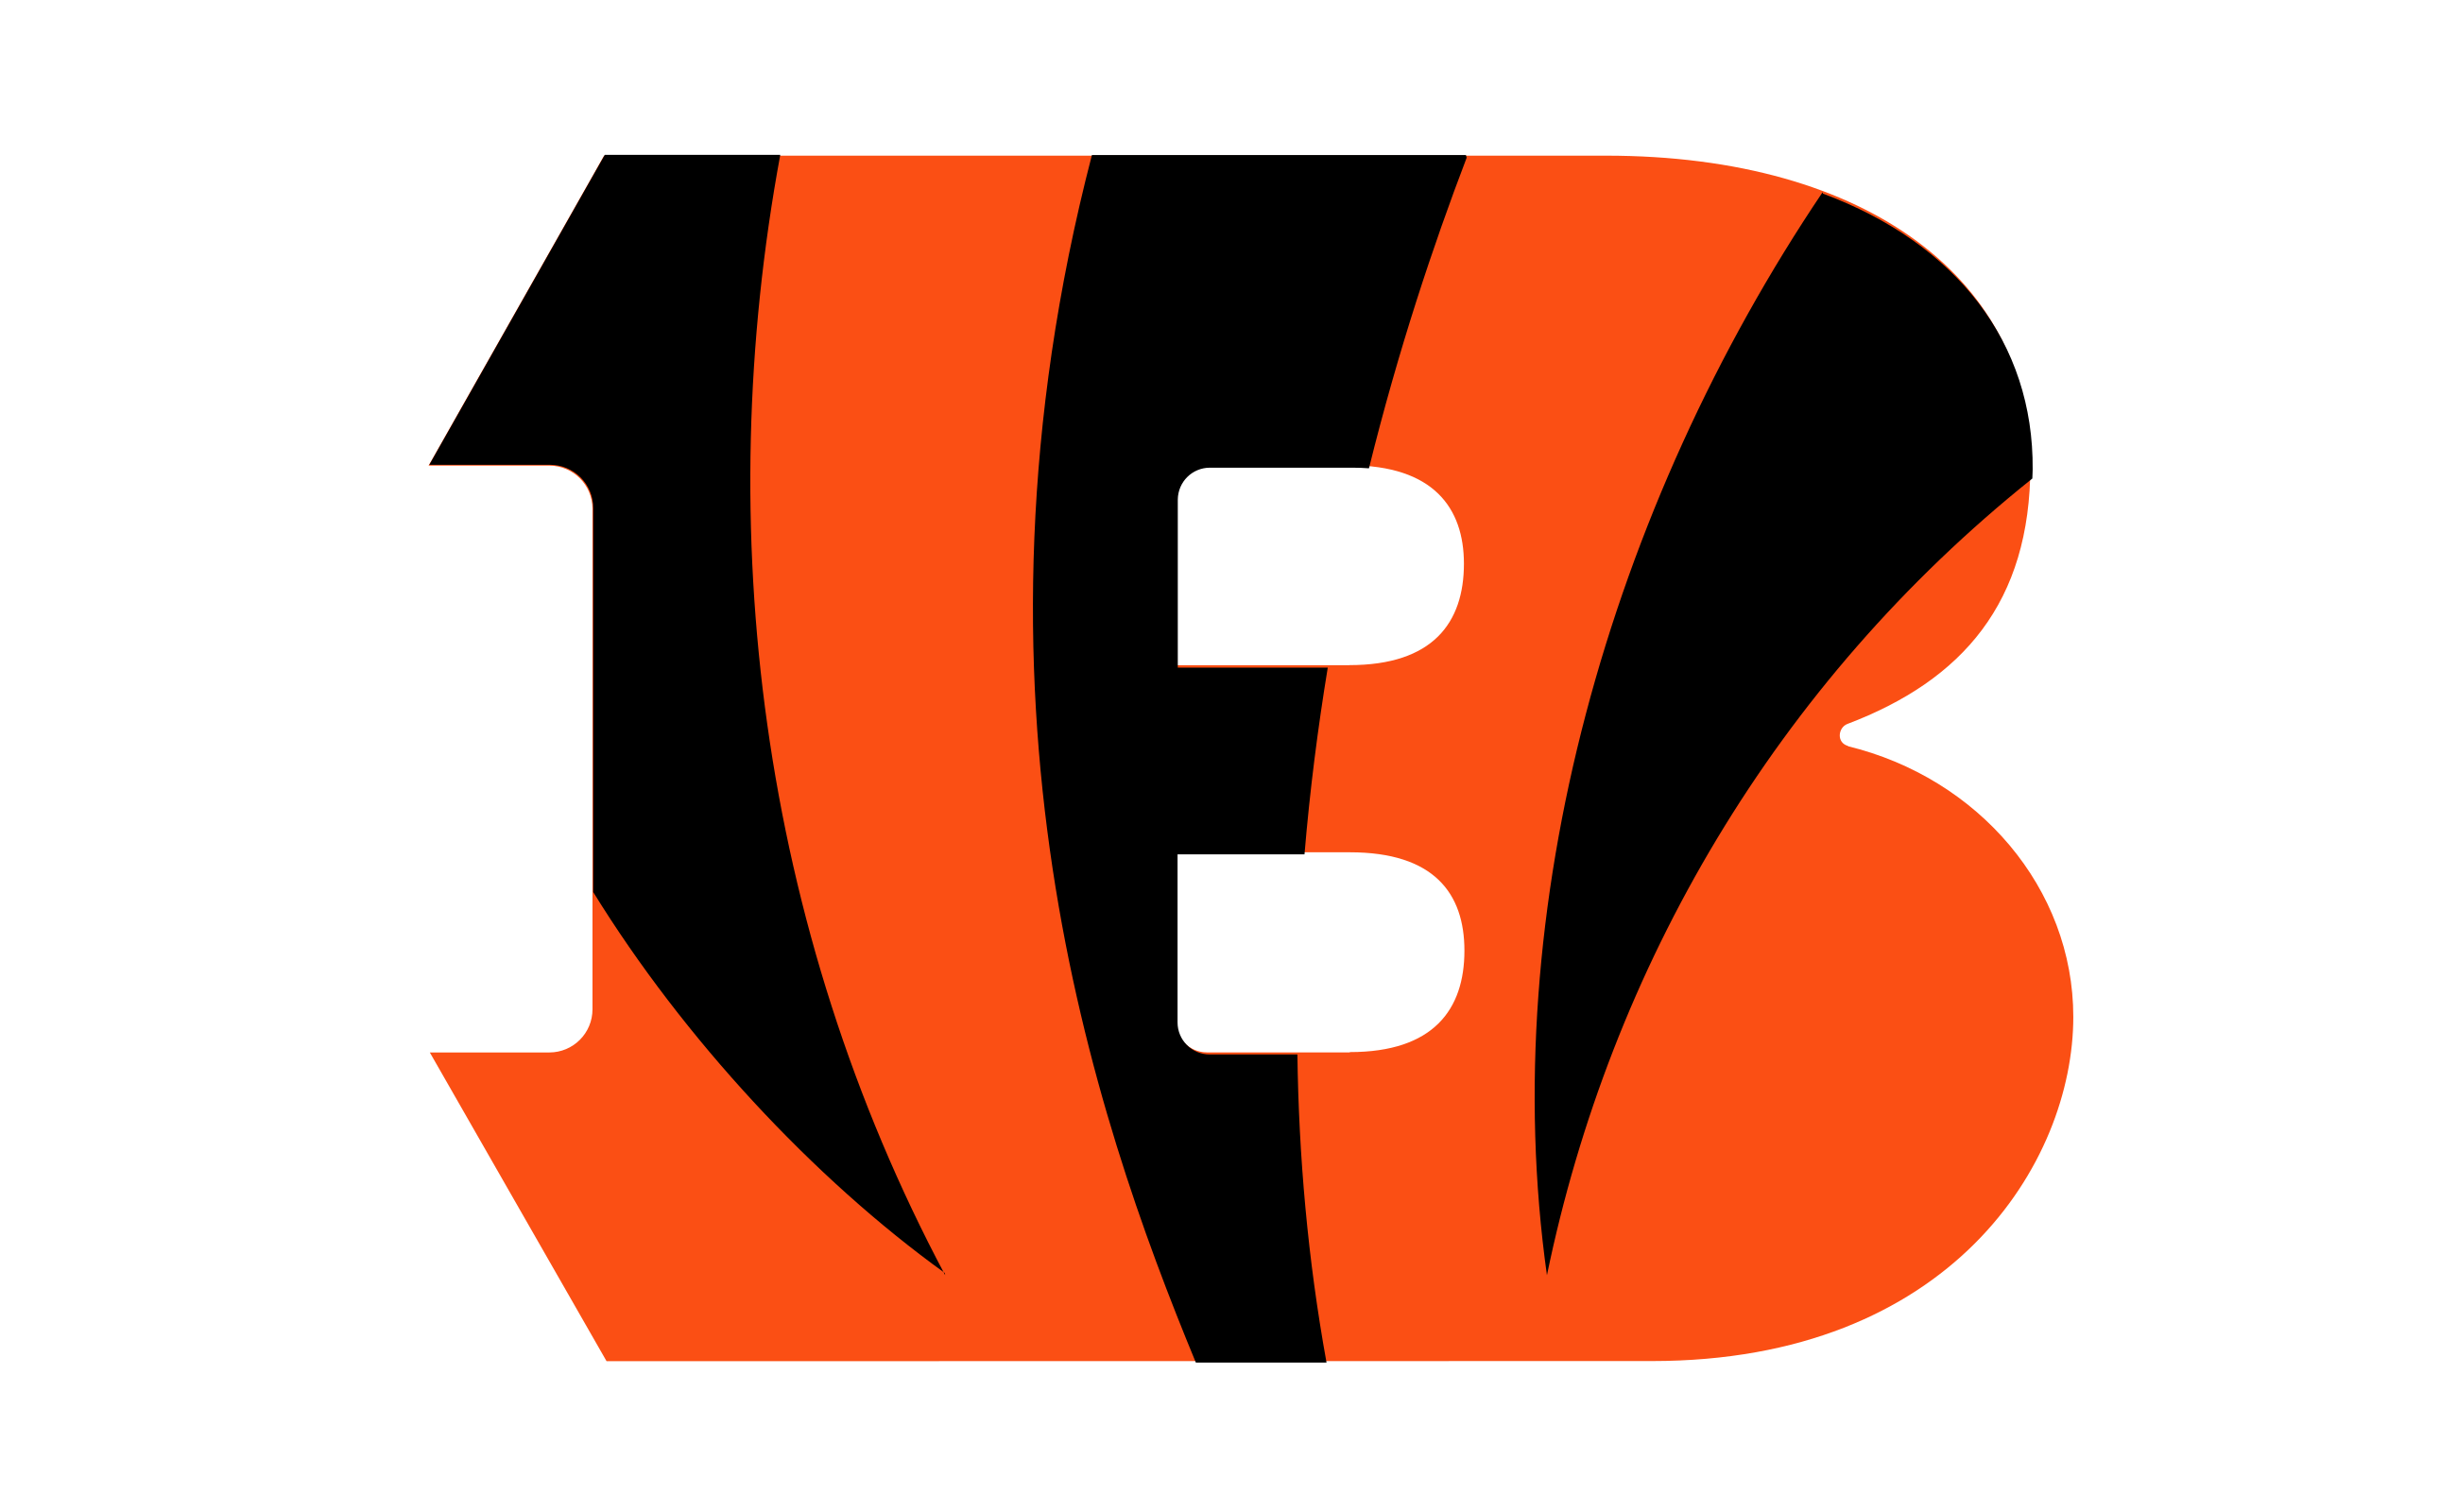 Cincinnati bengals logo bengals symbol meaning history and although the cincinnati bengals logo has been heavily modified more than once the tiger theme has always been present here biocorpaavc